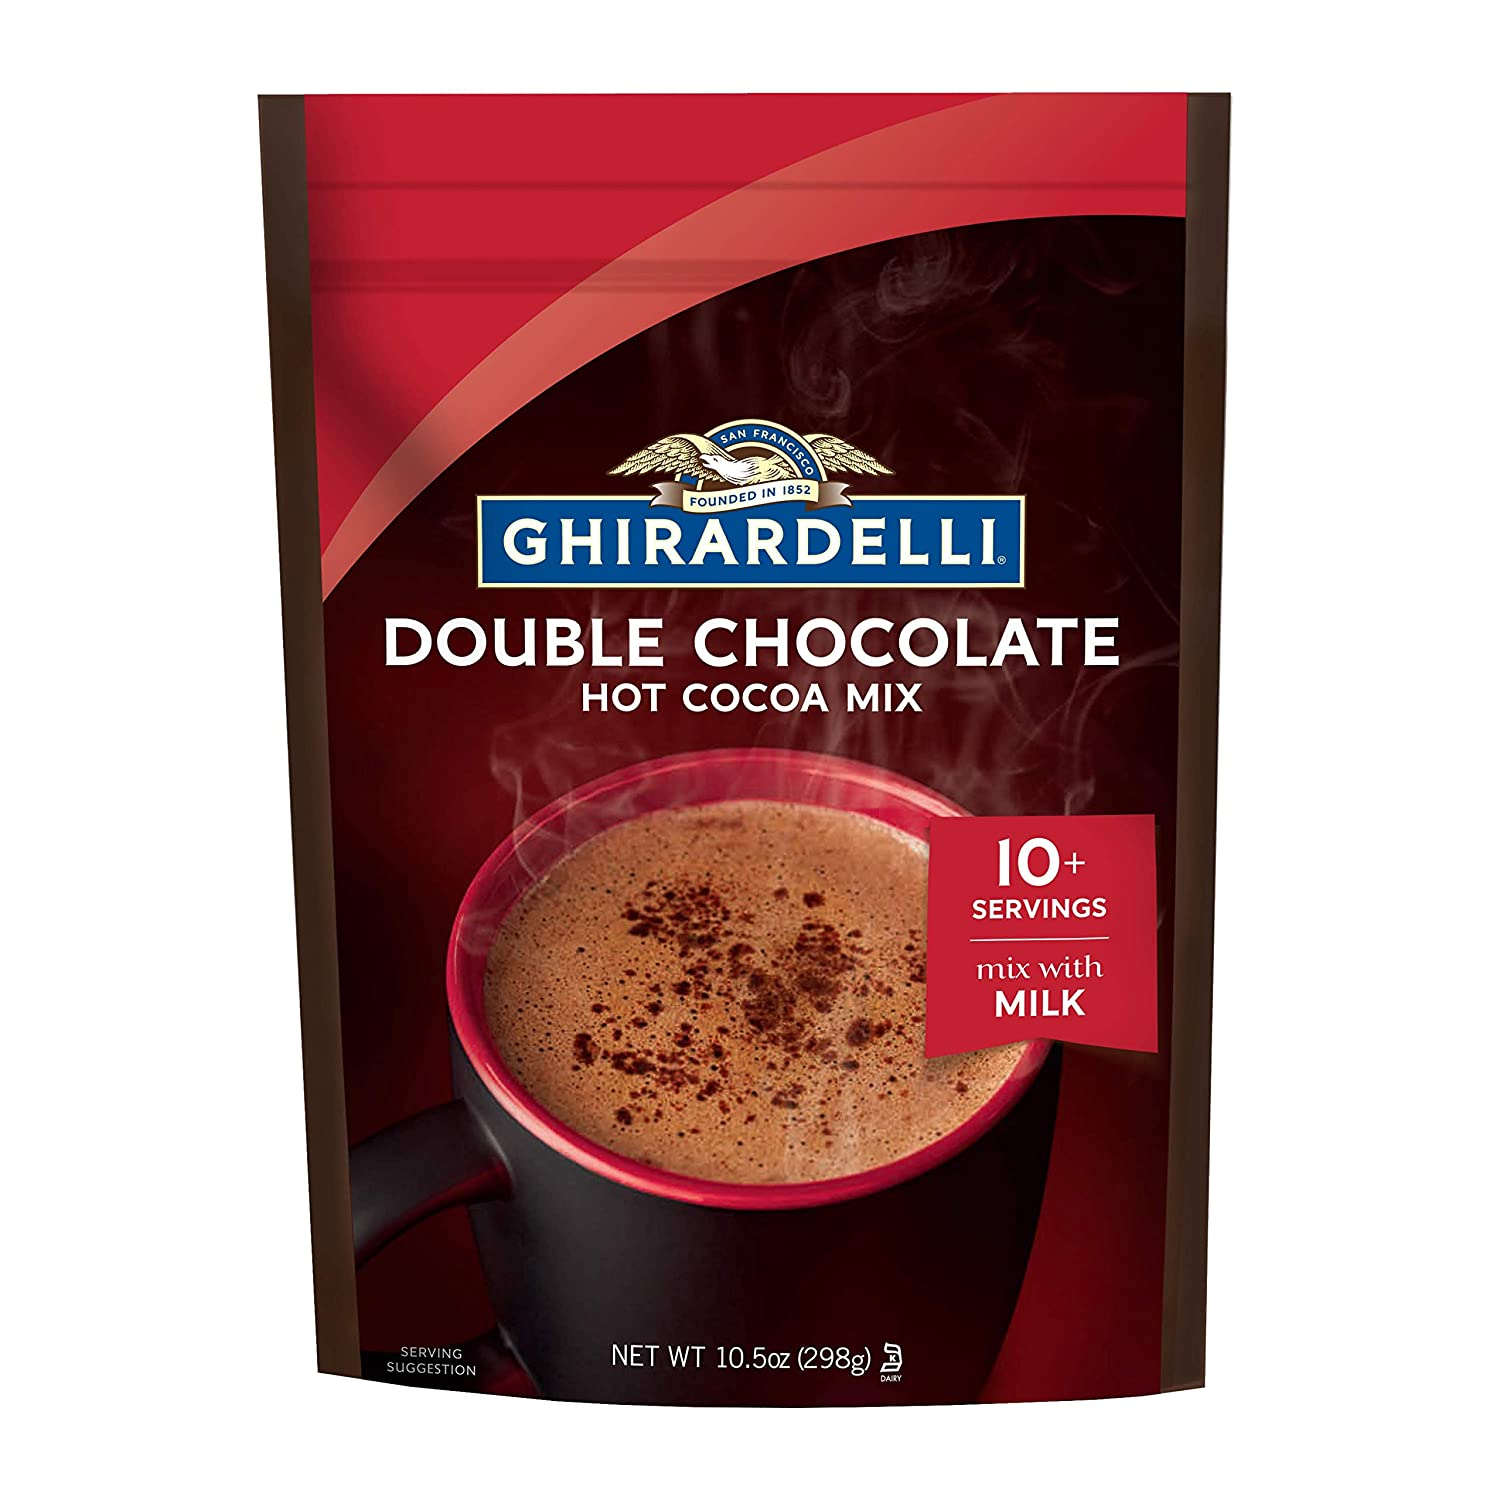 Ghirardelli Double Chocolate Premium Hot Cocoa - 10.5 oz. (298g)​